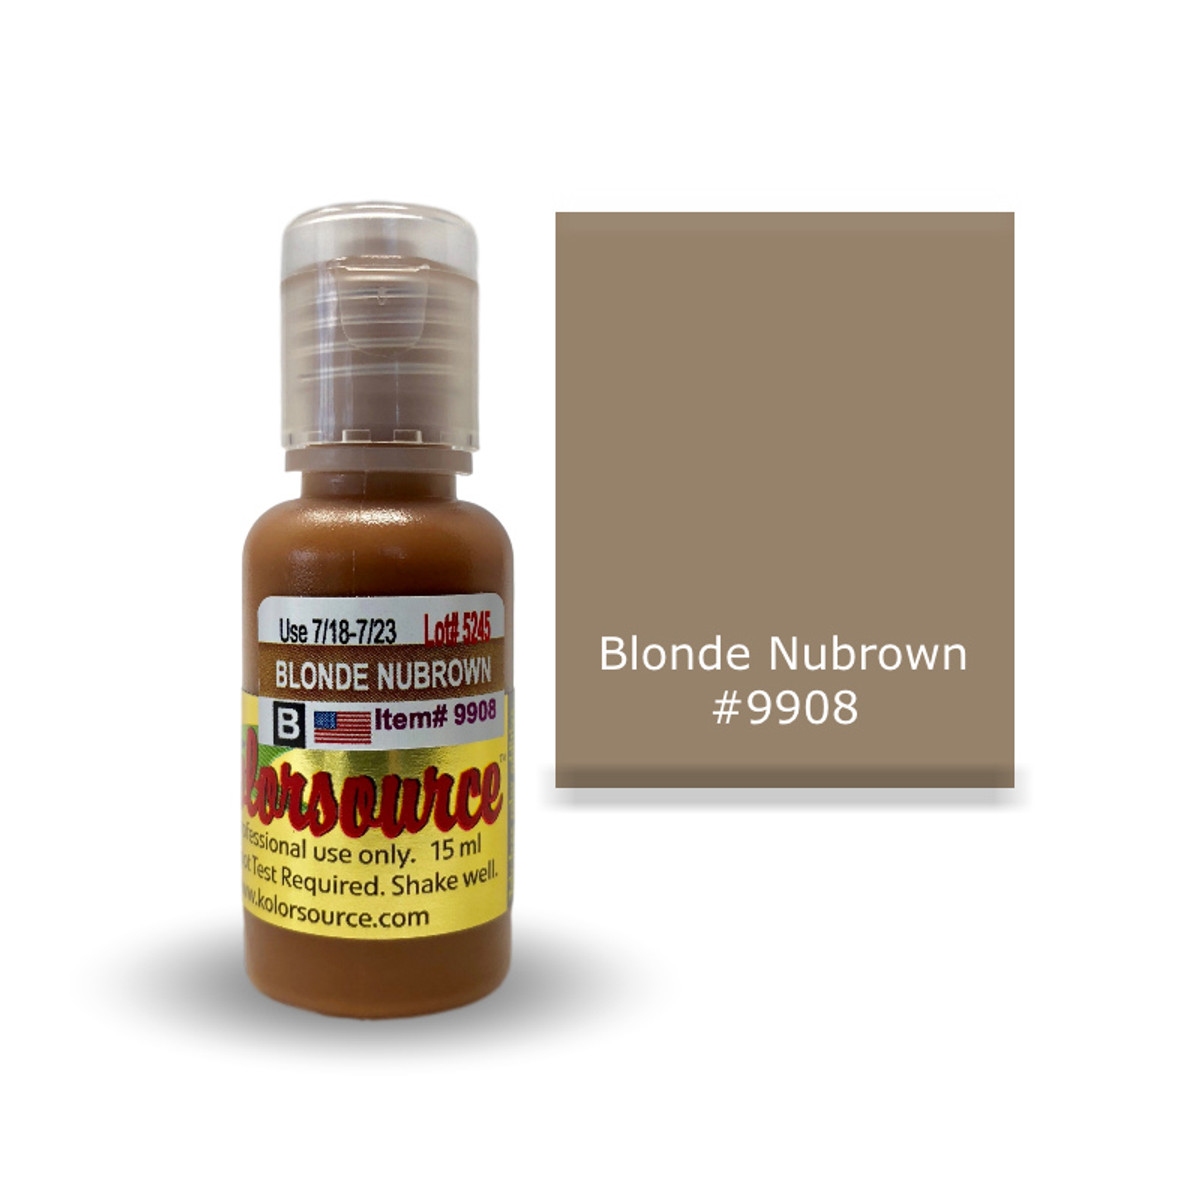 Kolorsource Permanent Makeup Pigment (PMU) Blonde Nubrown #9908 - 15ml